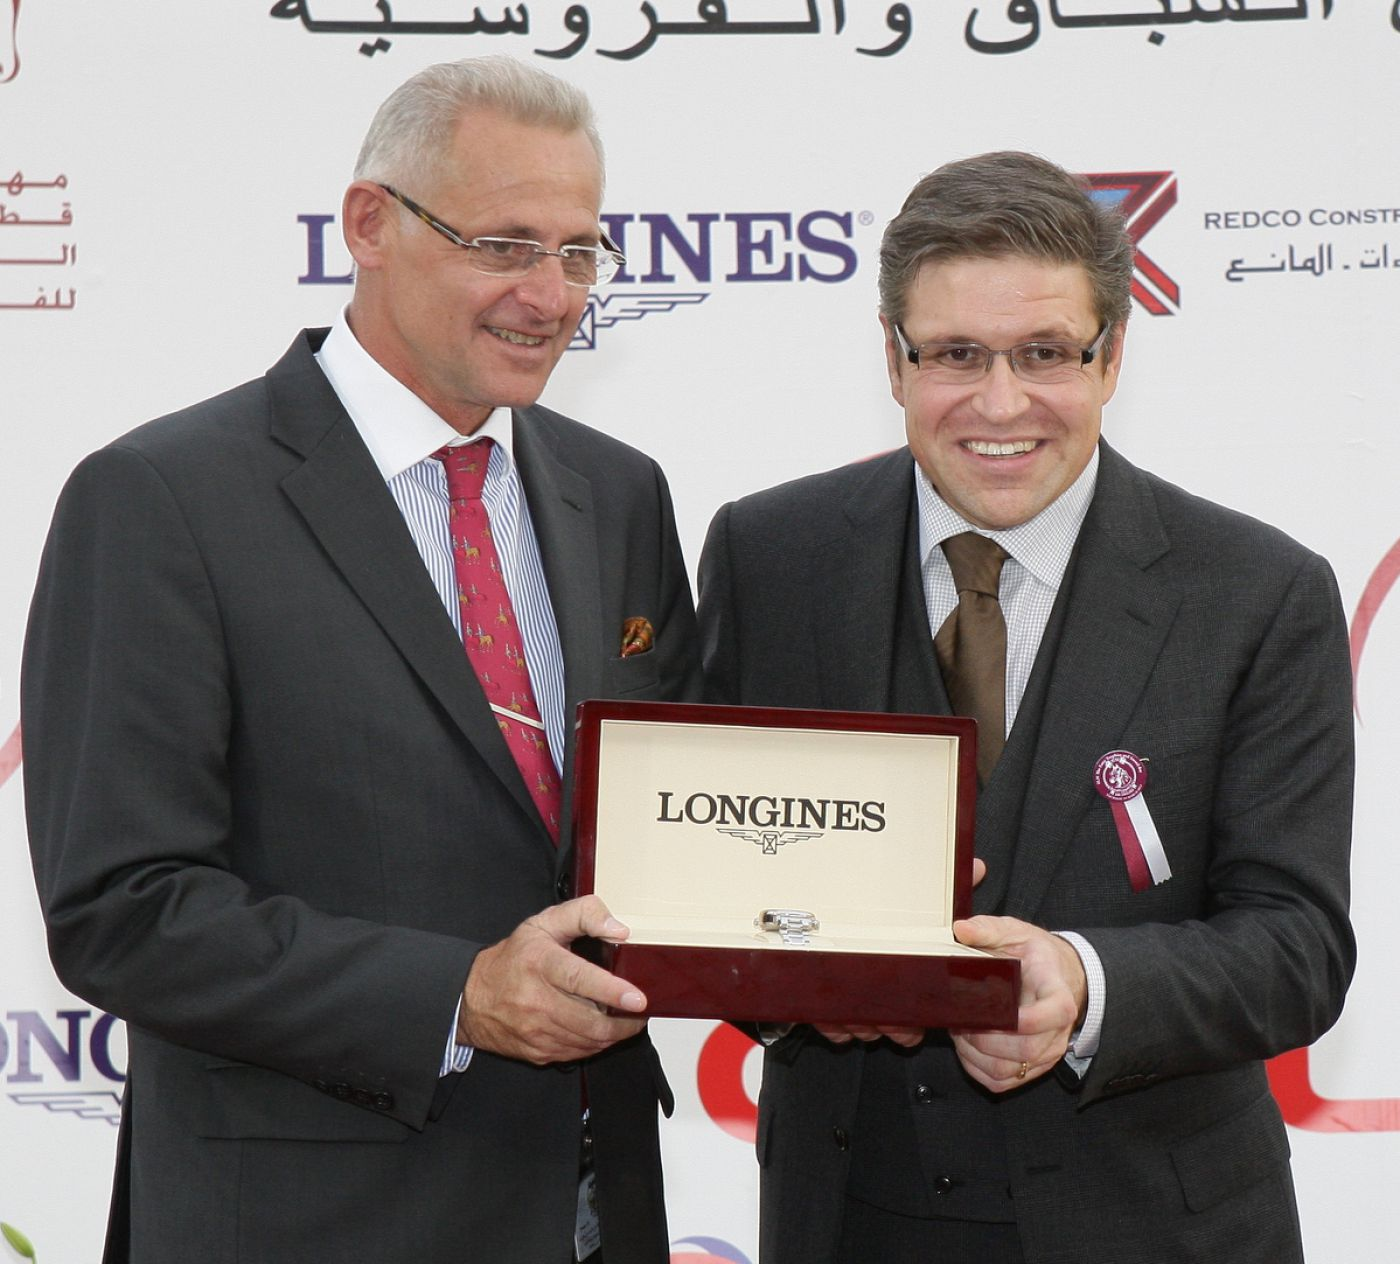 Longines Flat Racing Event: A thrilling race day in Qatar: H.H. the Emir's Sword and H.H. the Emir's Trophy presented by Longines 2